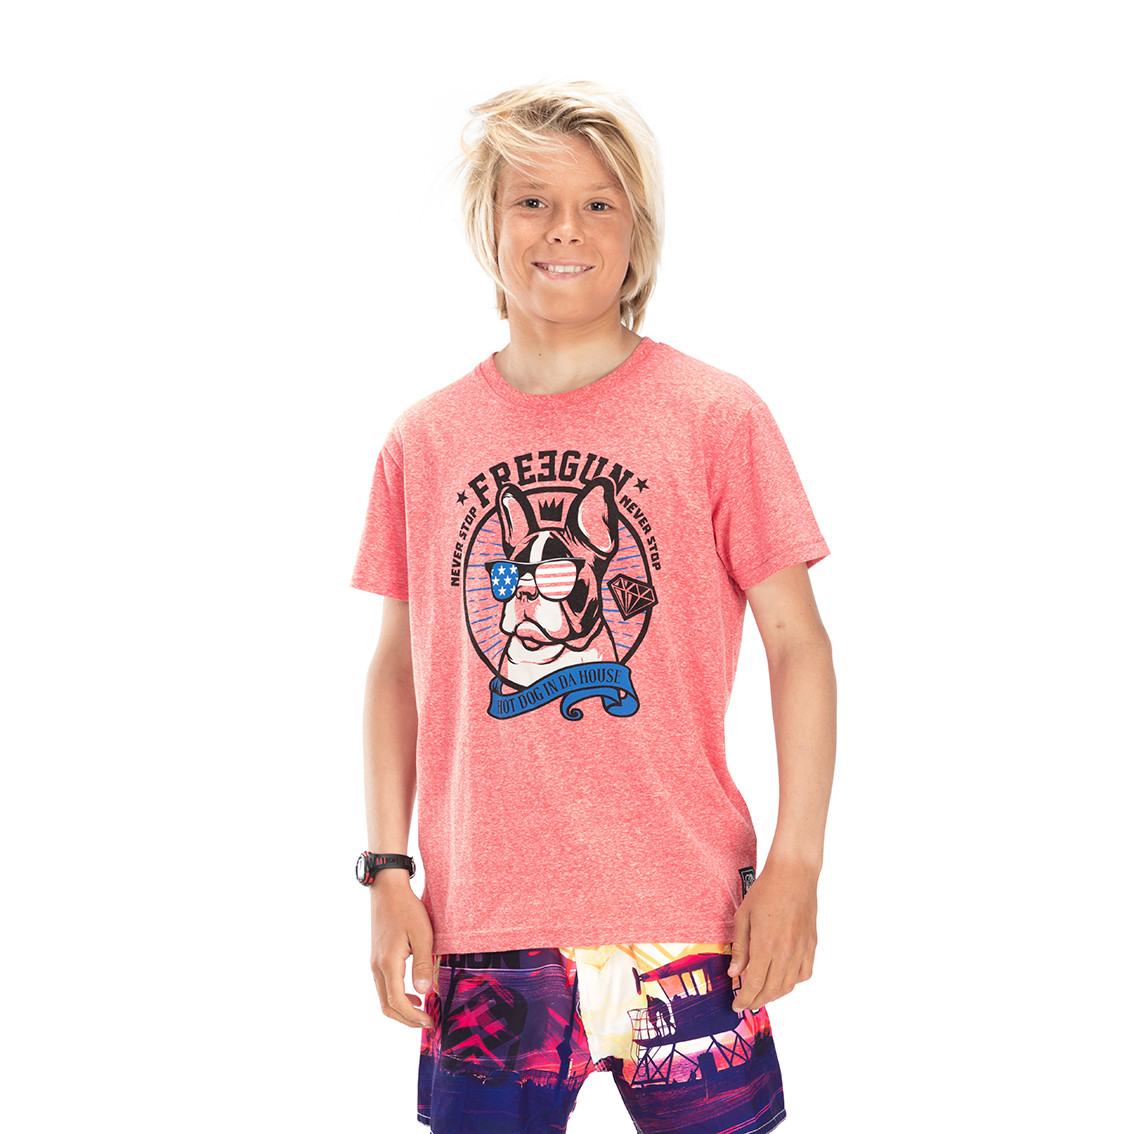 T-shirt freegun dog rose (photo)